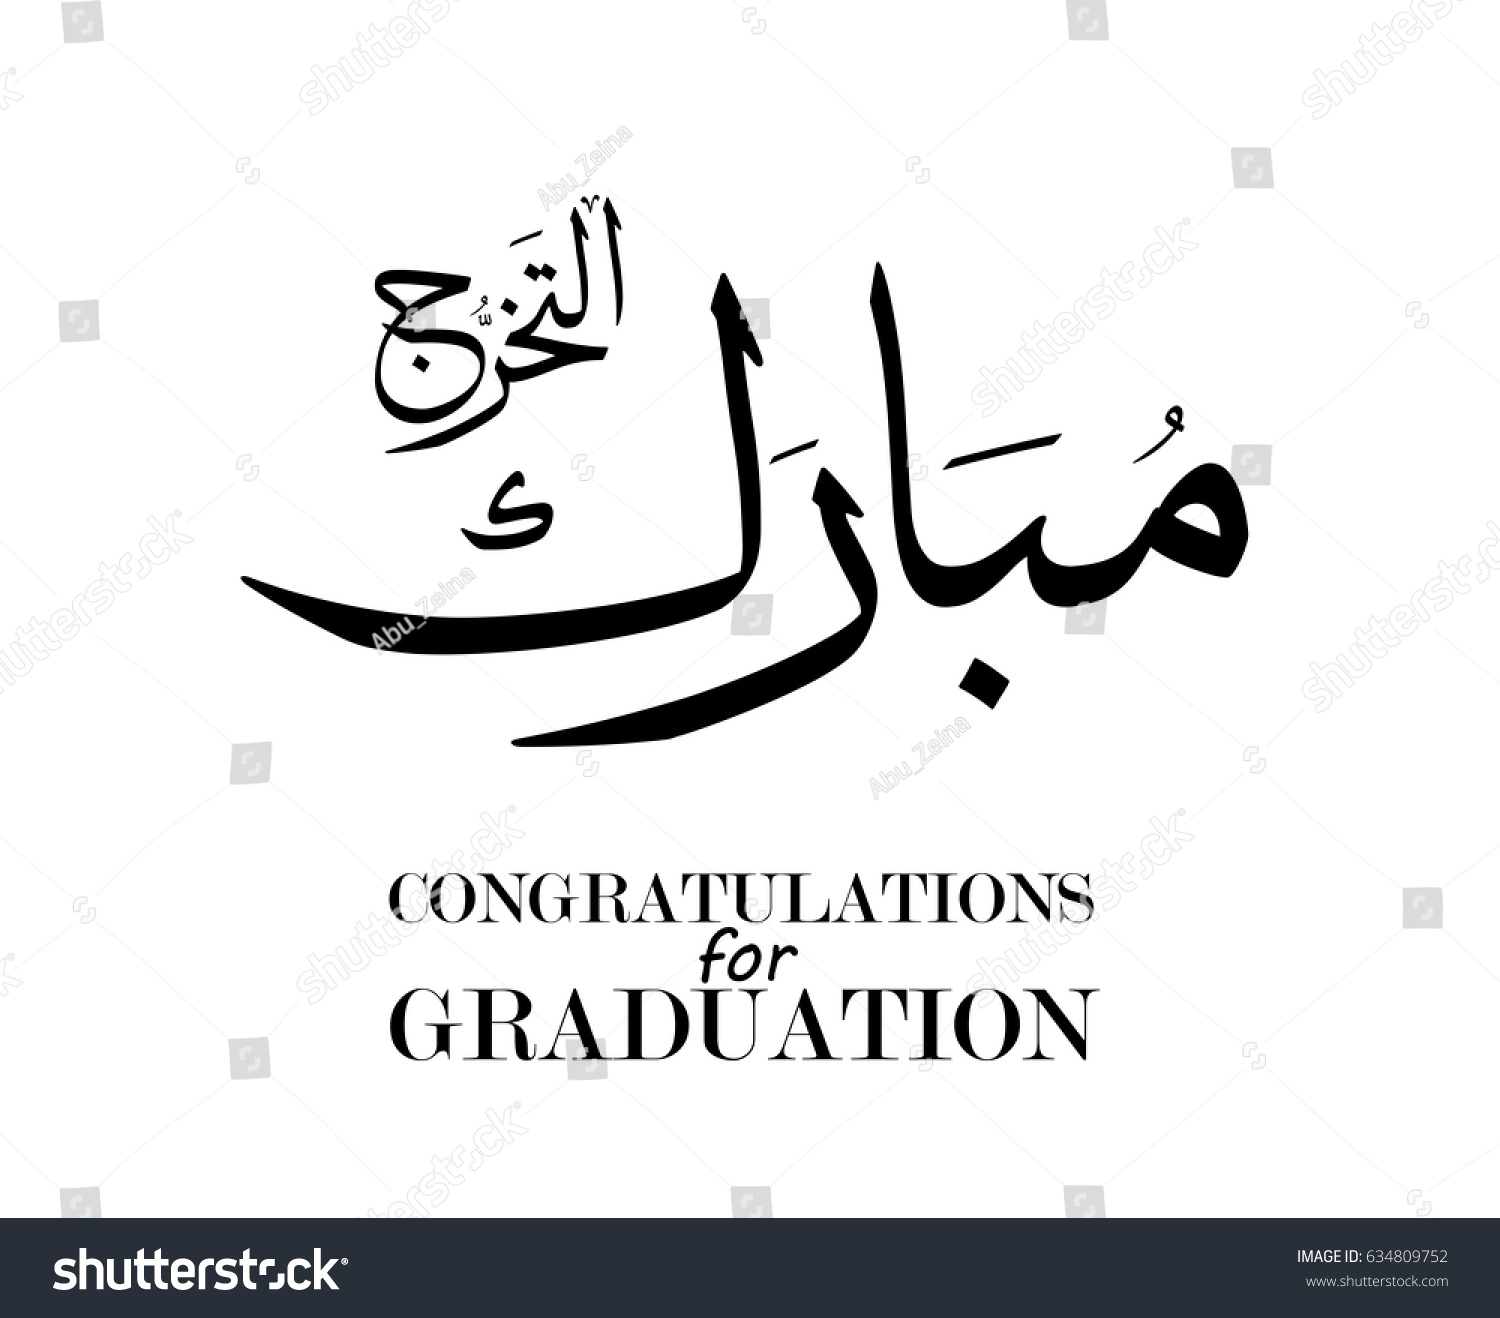 Congratulations graduation greeting arabic calligraphy logo stock congratulations for graduation greeting in arabic calligraphy logo for graduation event in creative arabic calligraphy kristyandbryce Gallery